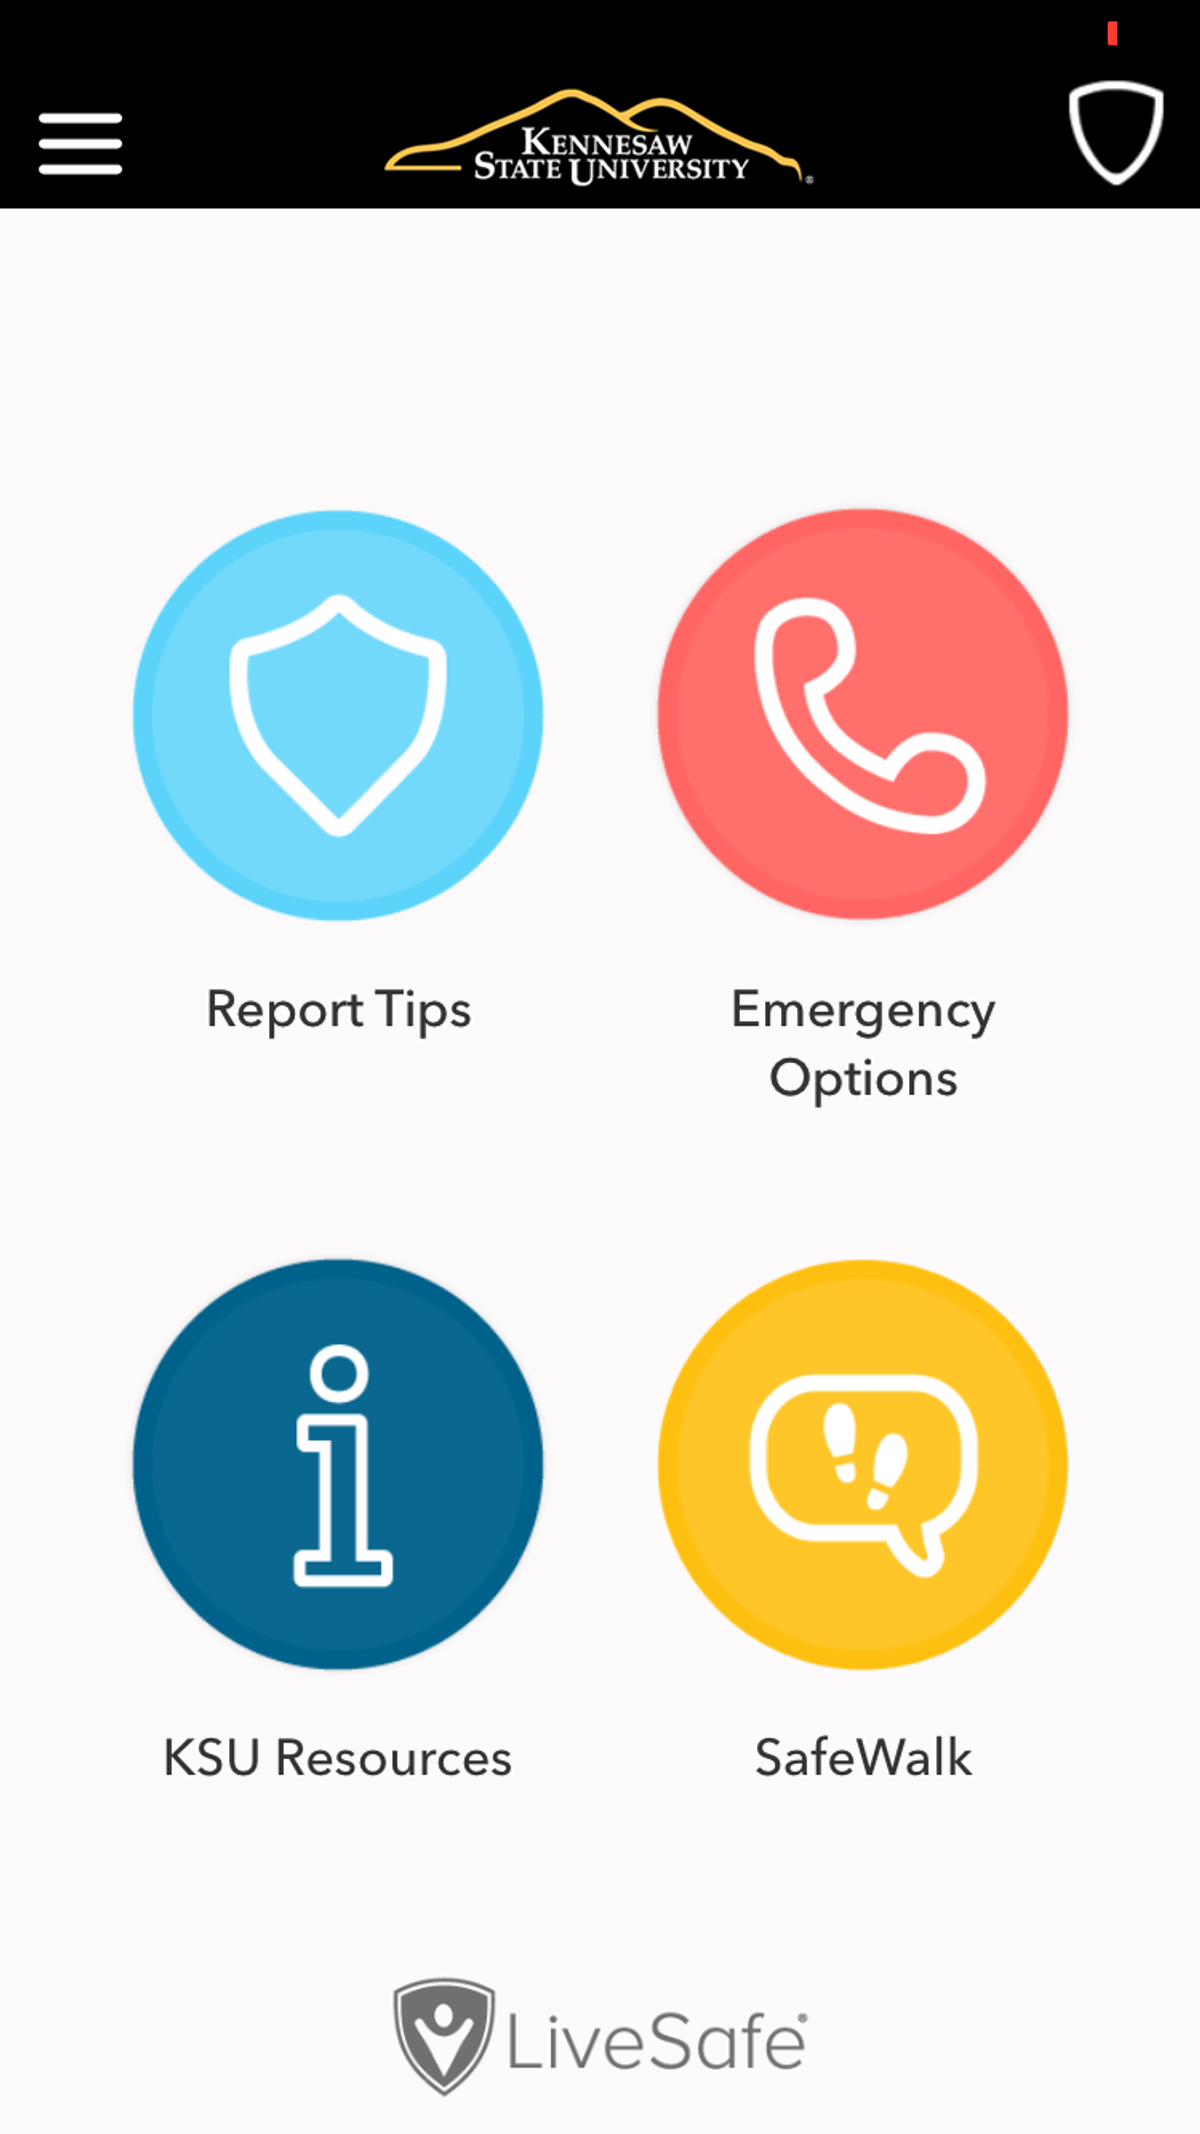 Kennesaw State University Launches LiveSafe Application